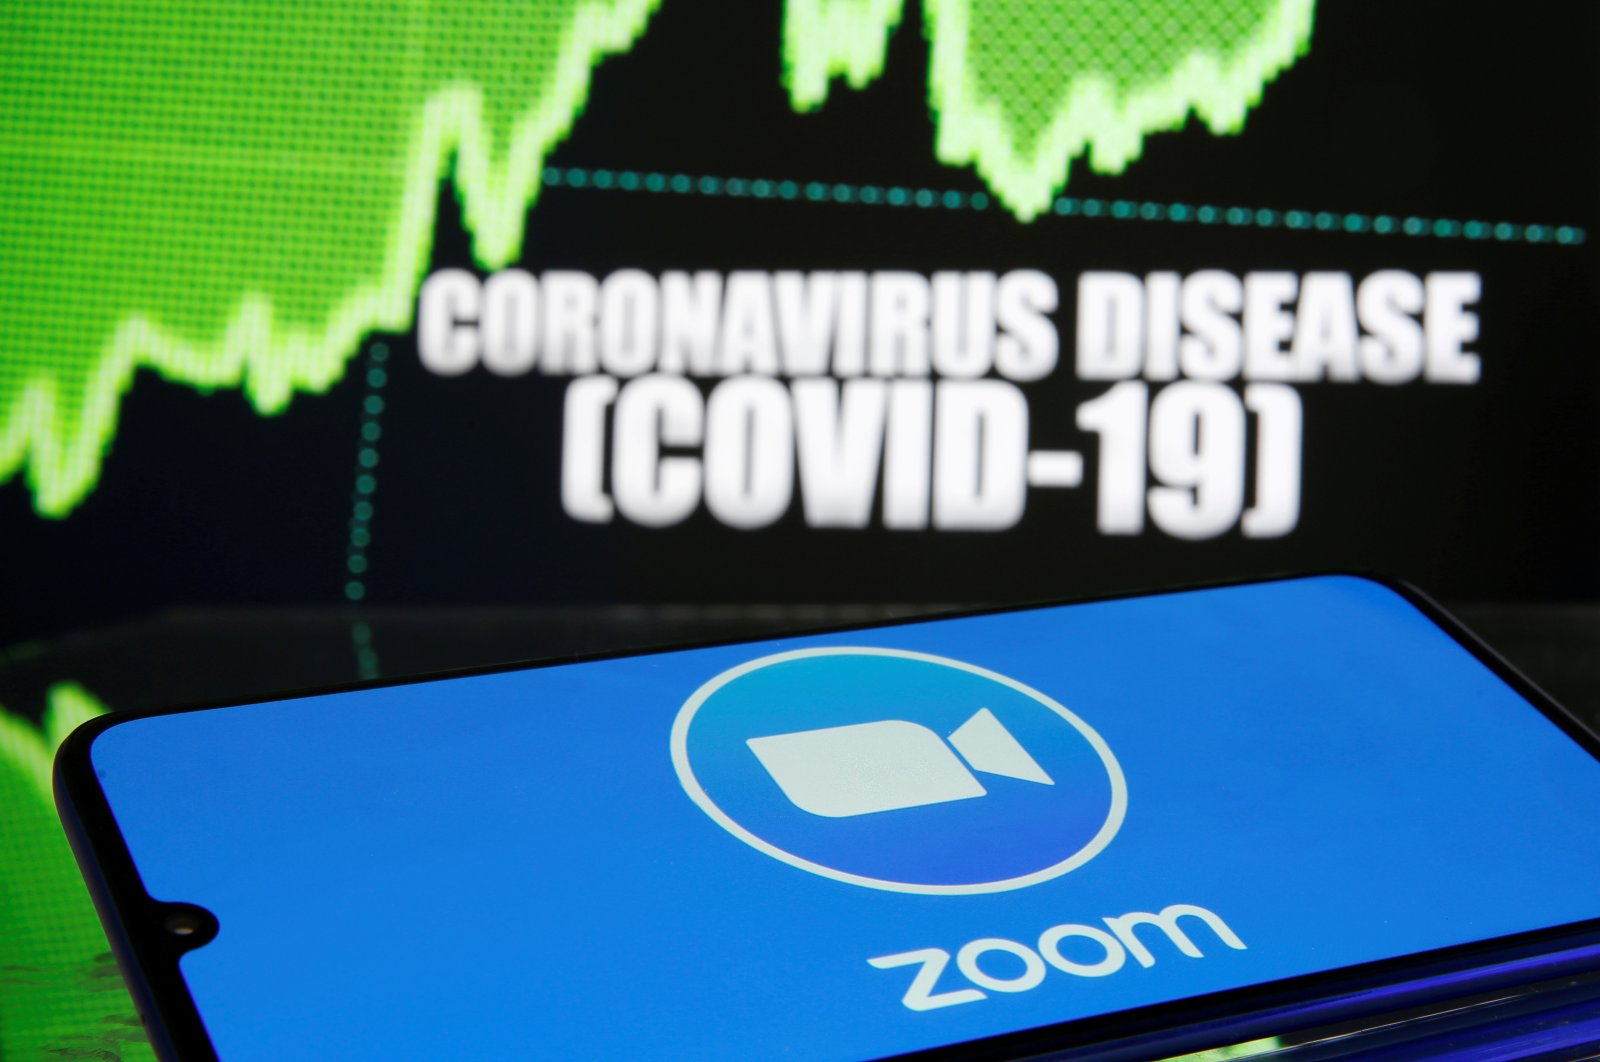 The Zoom logo is seen in front of a COVID-19-related image in this photo taken March 19, 2020. (Reuters Photo)